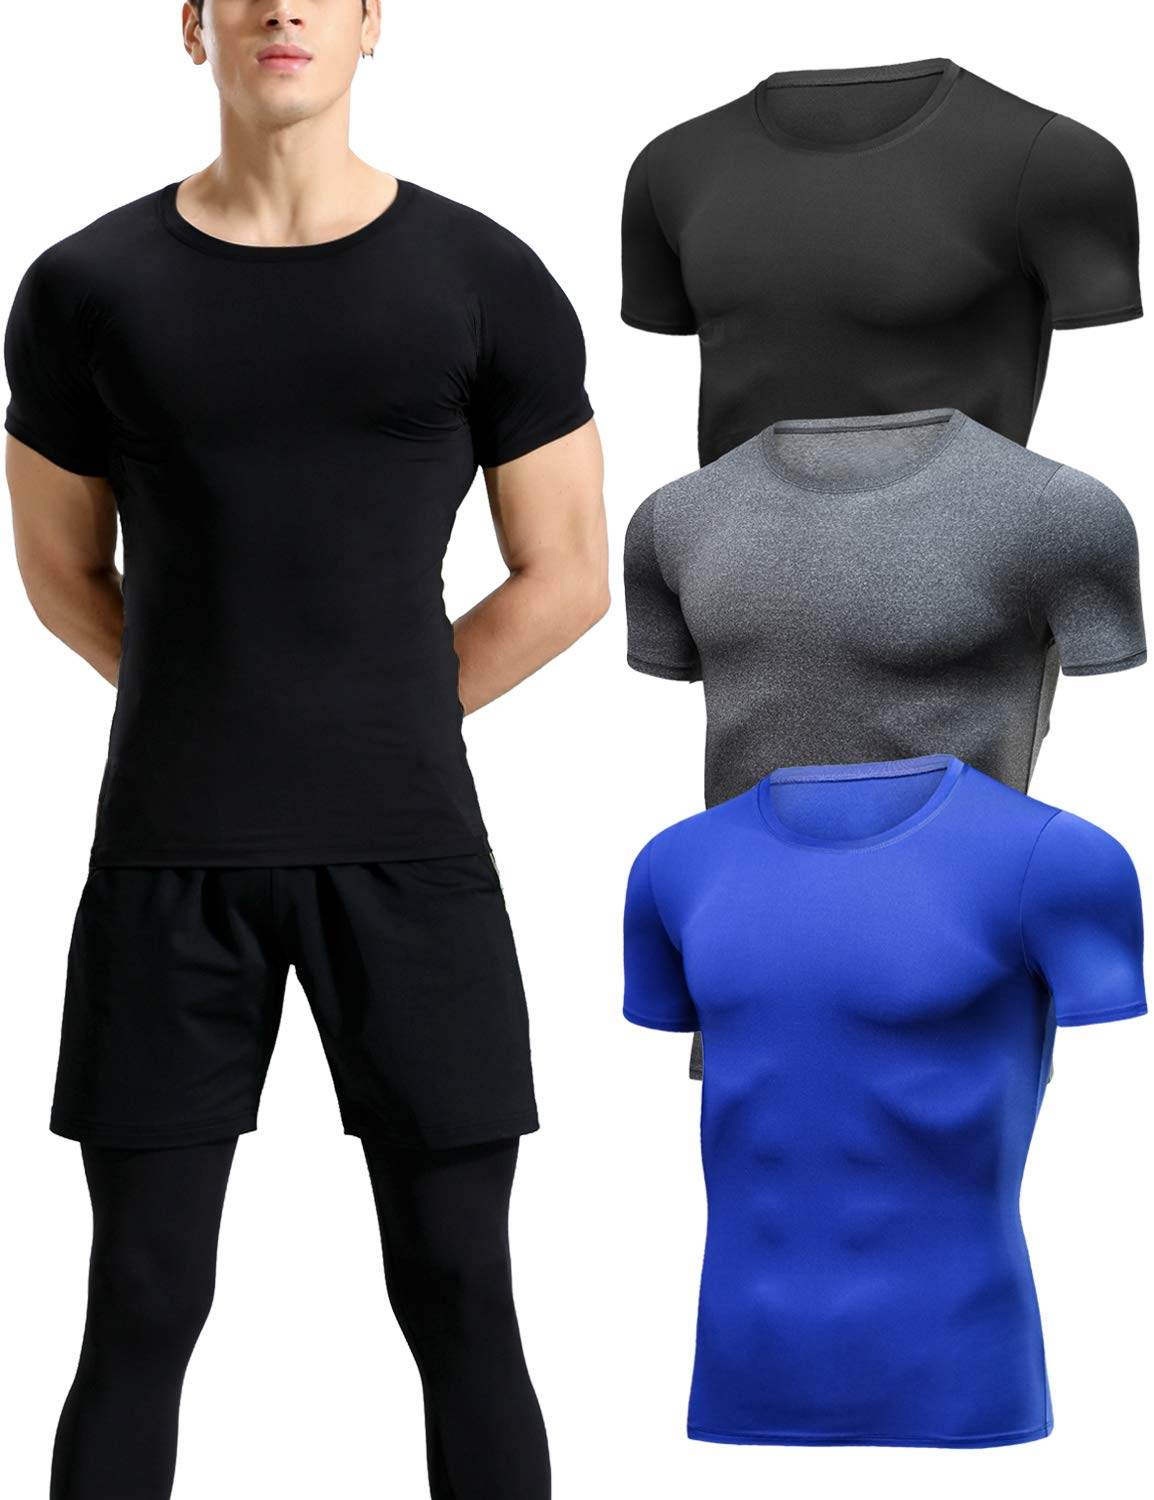 Lavento Men's Compression Shirts Cool Dry Short-Sleeve Workout Undershirts (3 Pack-Crew Neck Black/Heather Gray/Blue,Large) by Lavento